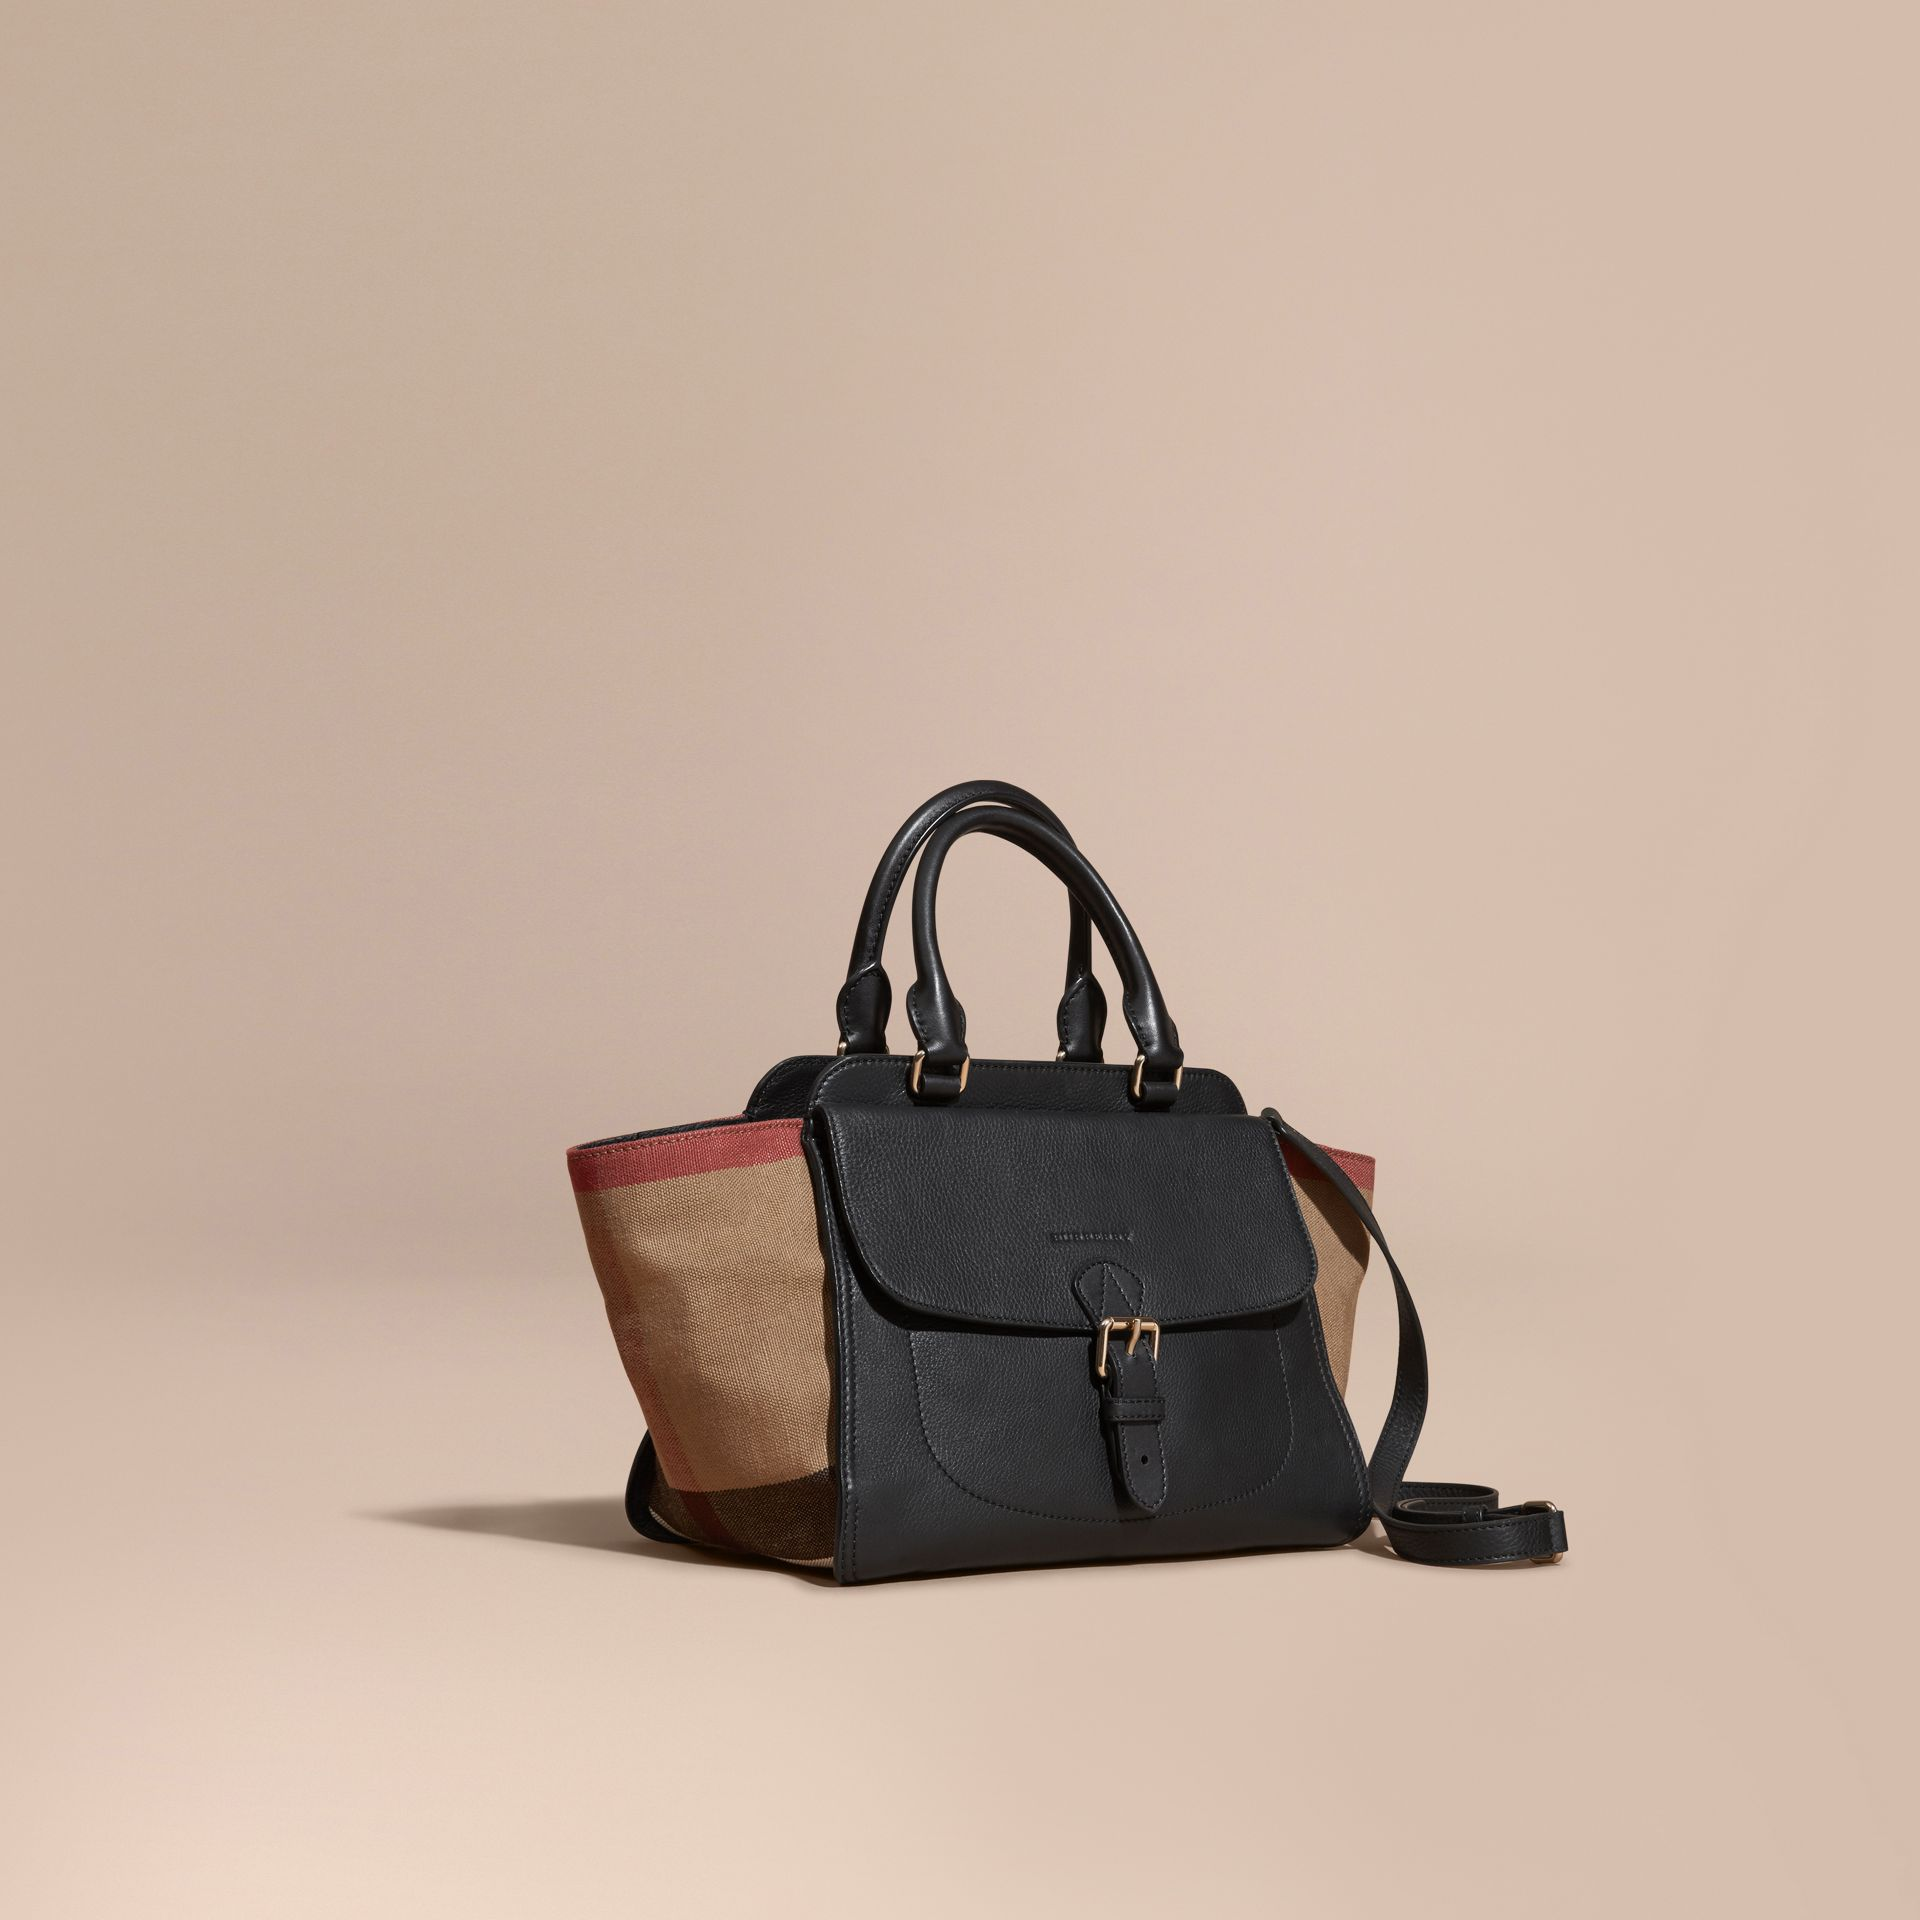 Black Medium Canvas Check and Leather Tote Bag - gallery image 1